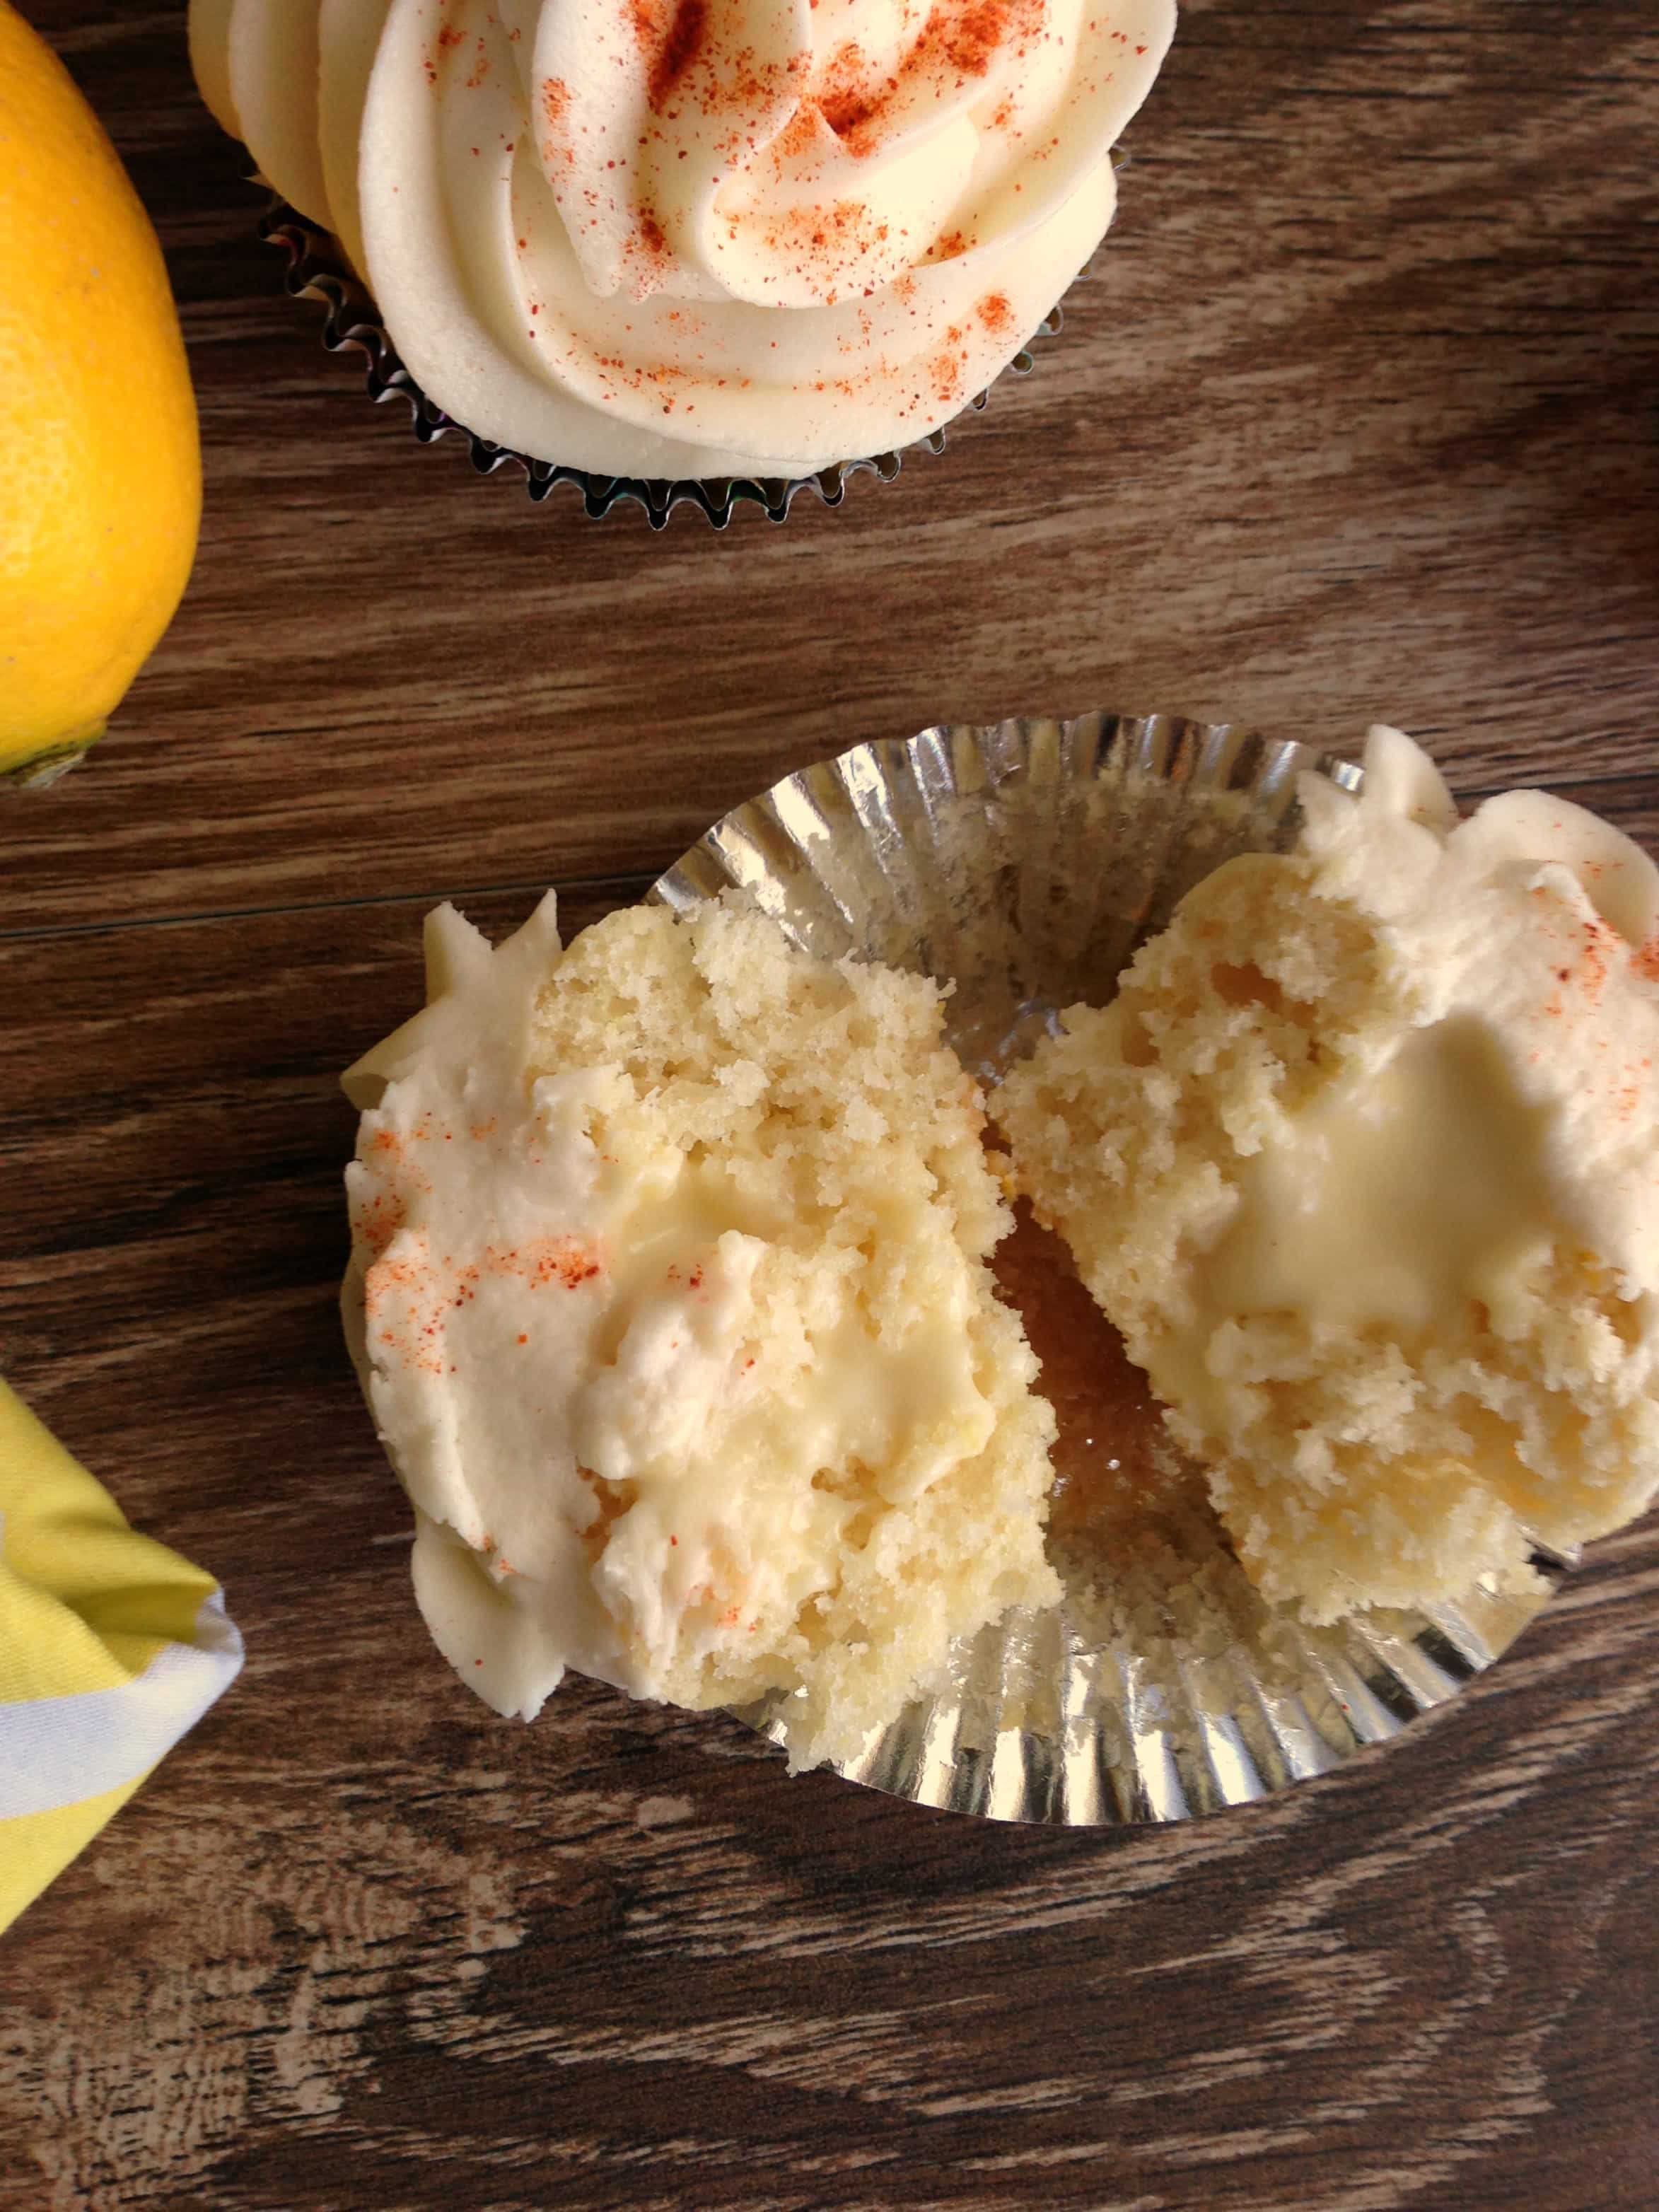 Split cupcake showing the filling in the center.